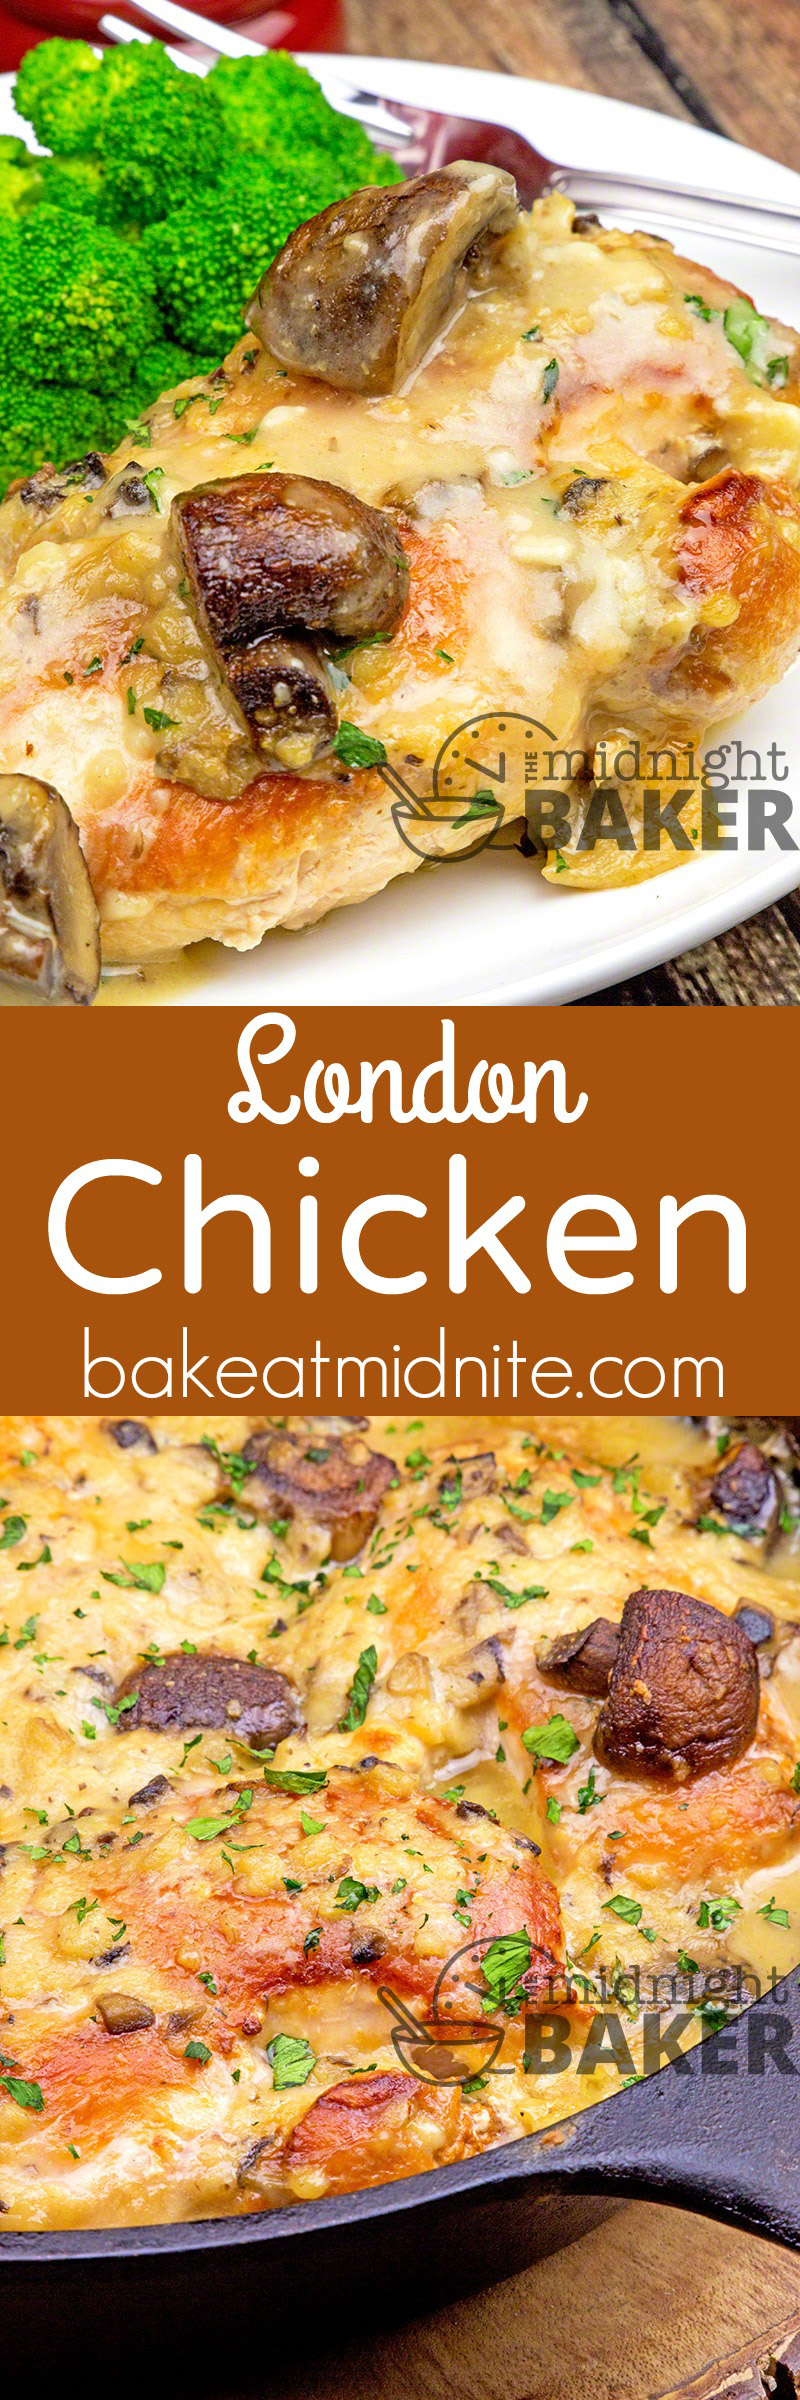 One of the most delicious and easy chicken dinners you'll ever make! Only 3 ingredients!